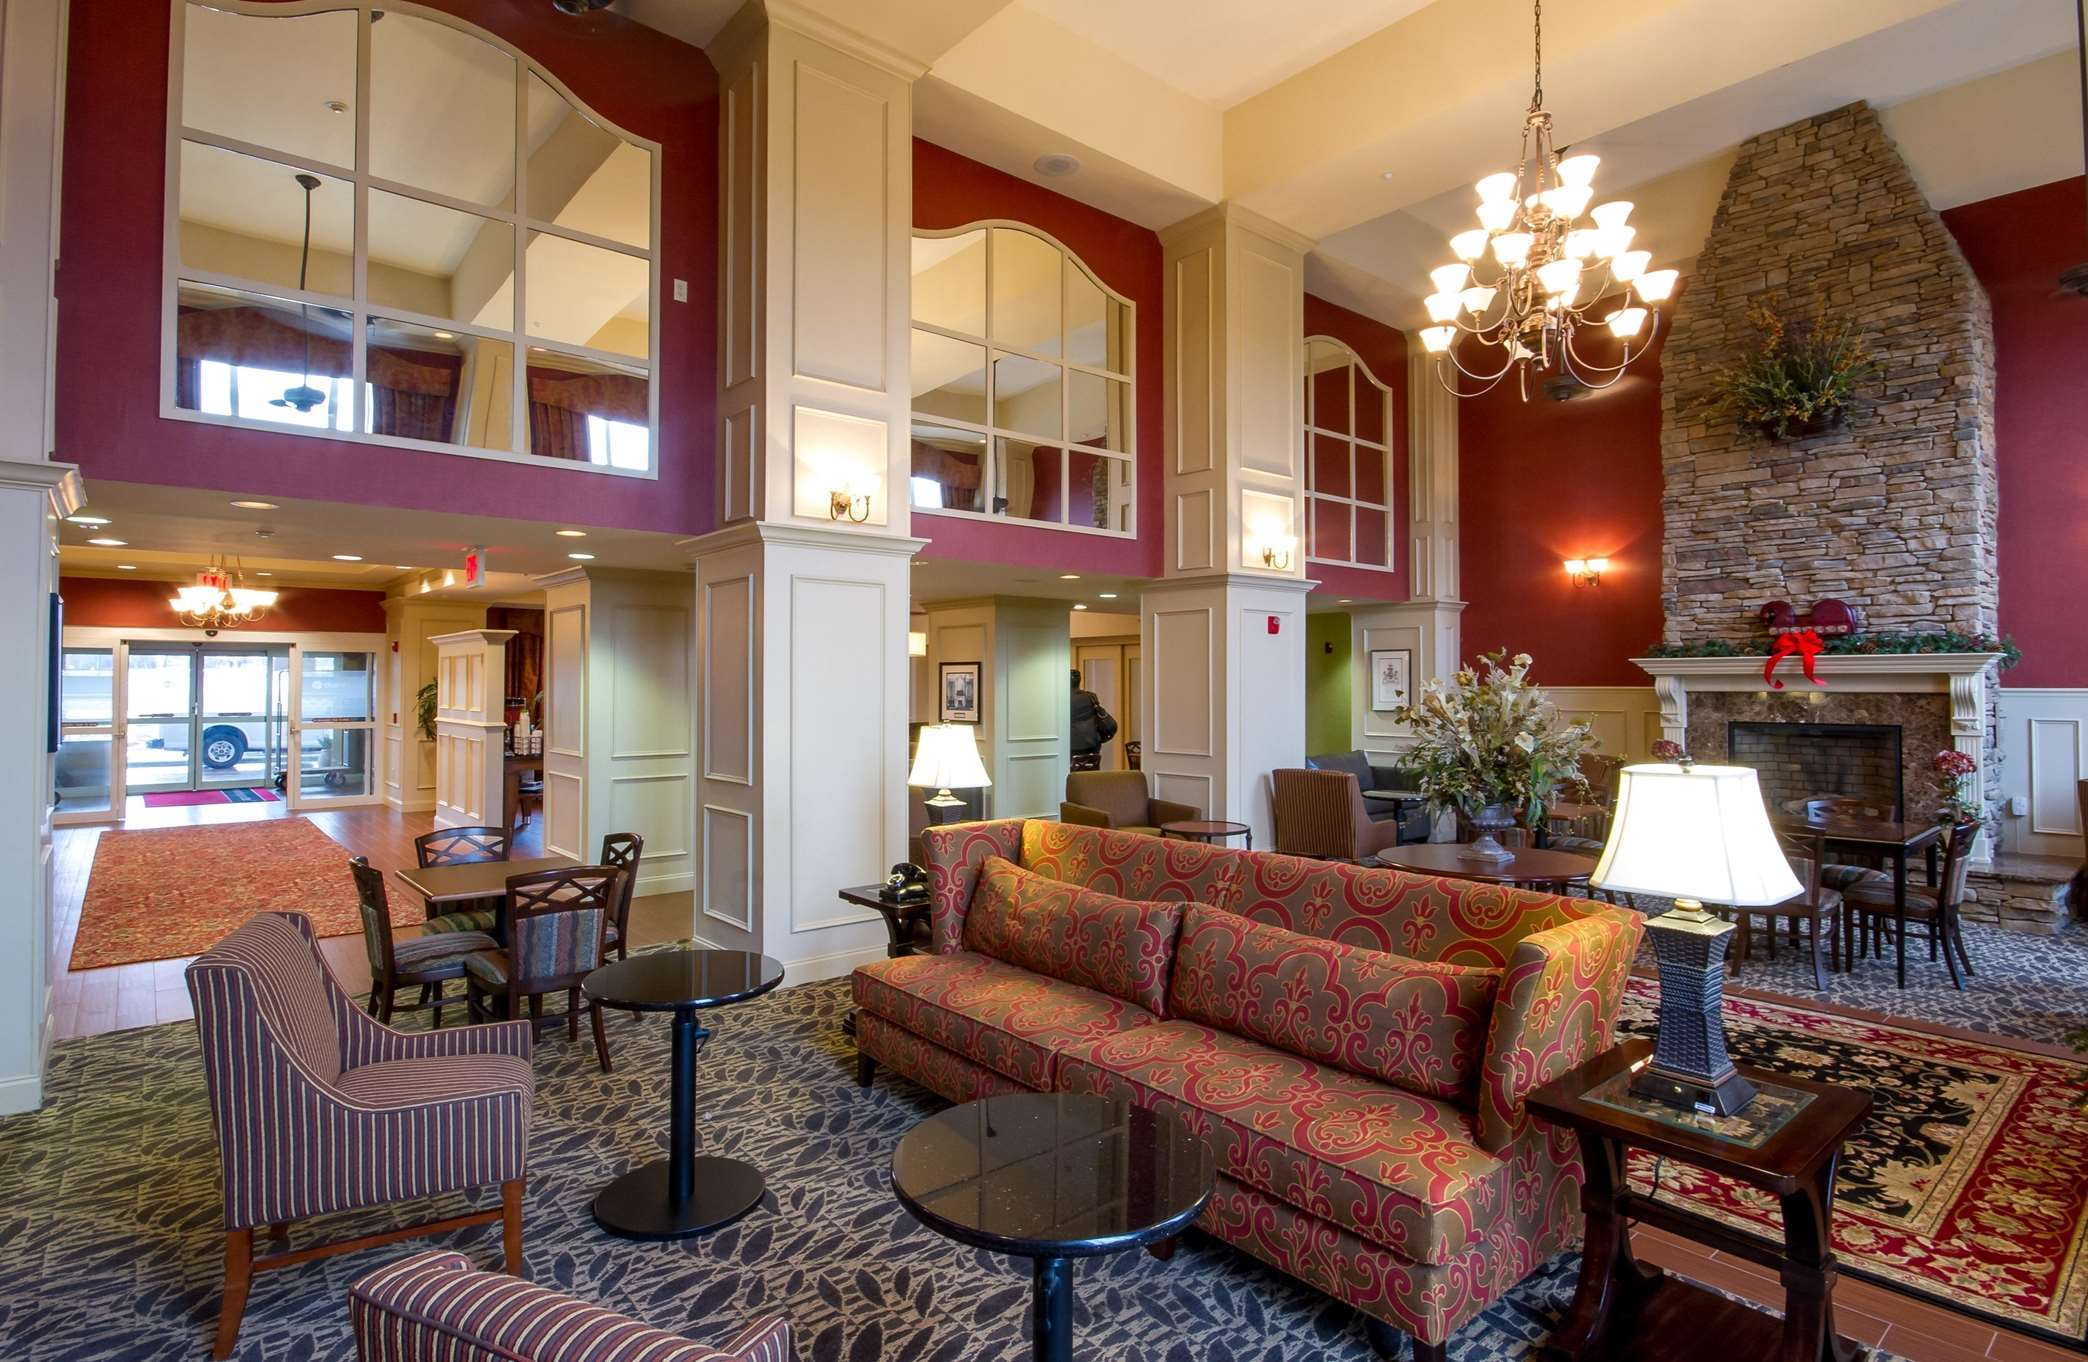 Lobby Seats and Fireplace